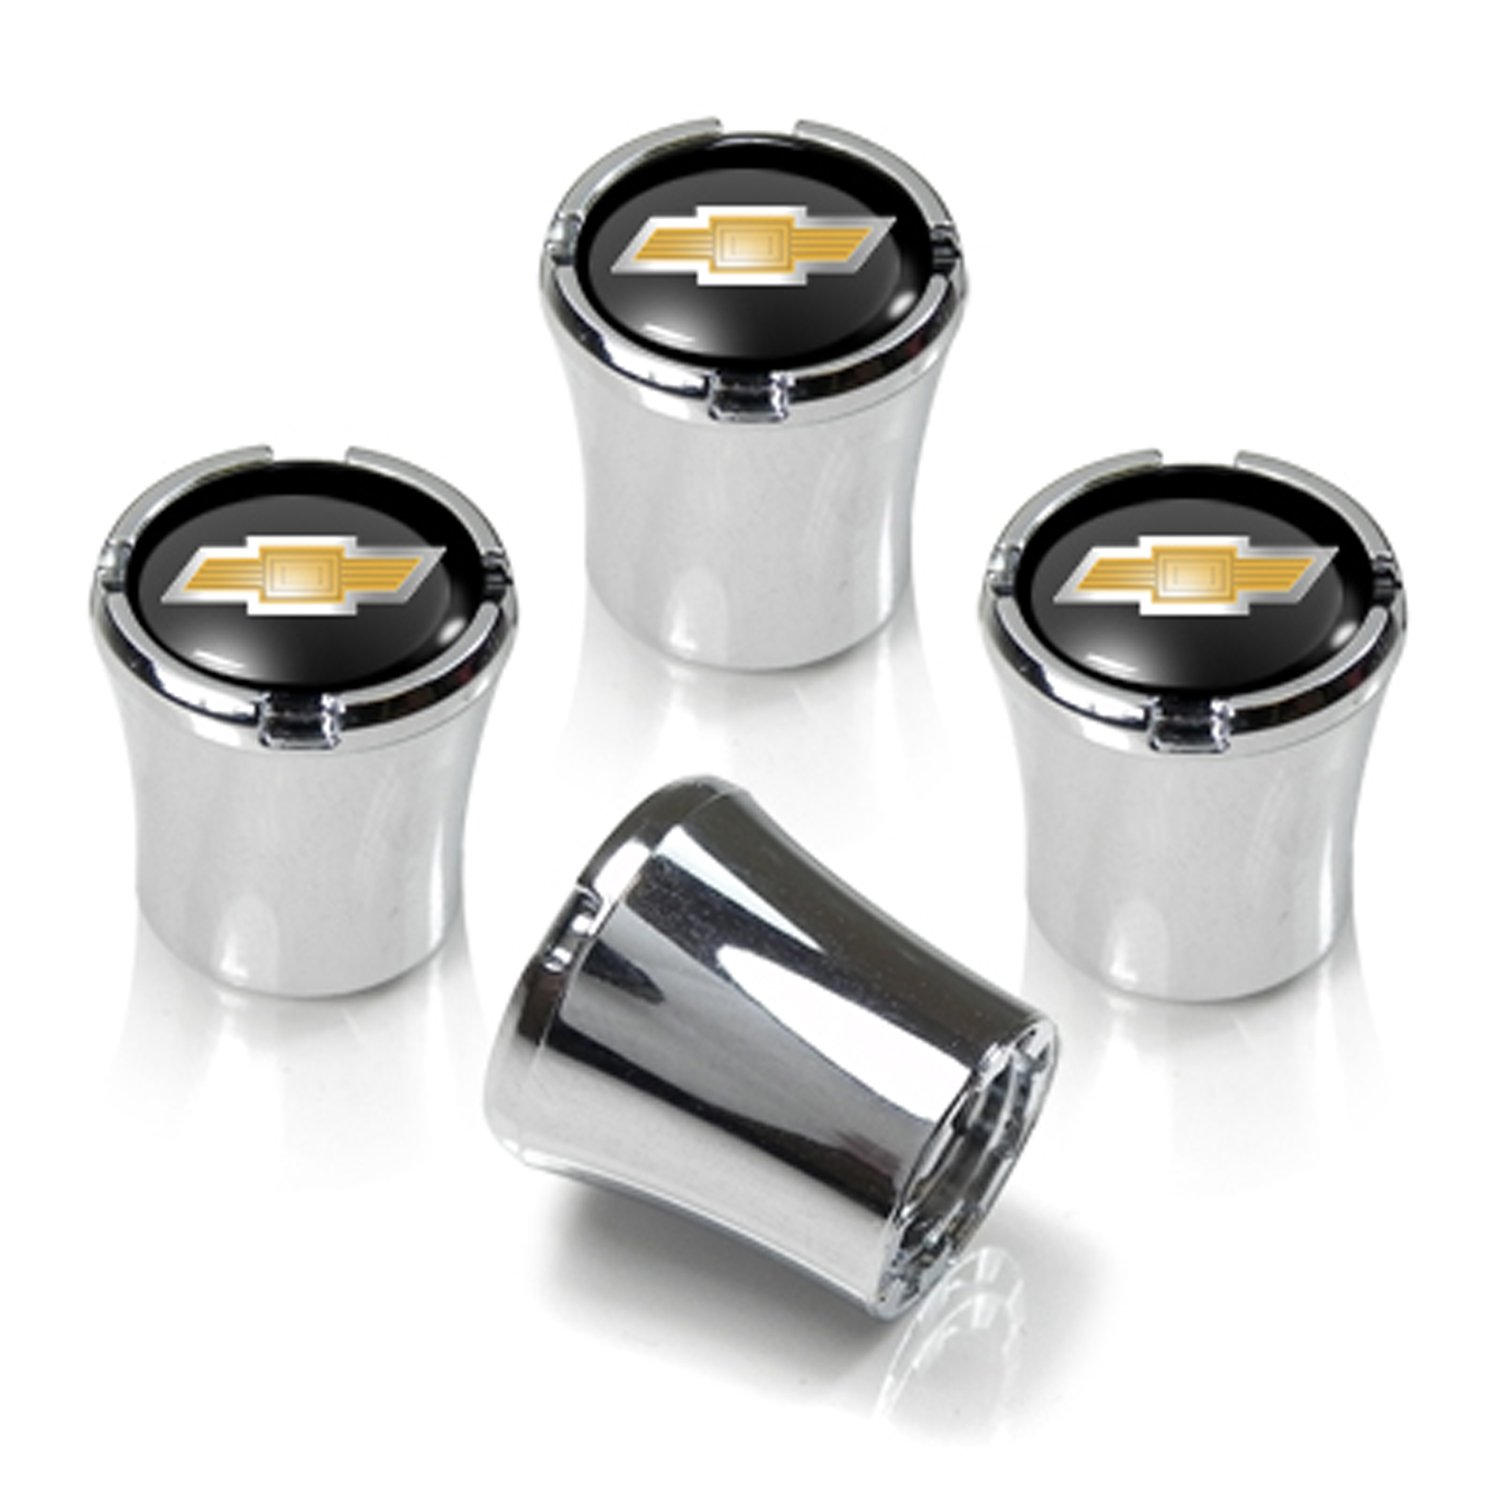 Chevrolet Chrome & Black Valve Stem Caps w/Gold Bowtie Logo - Set of 4